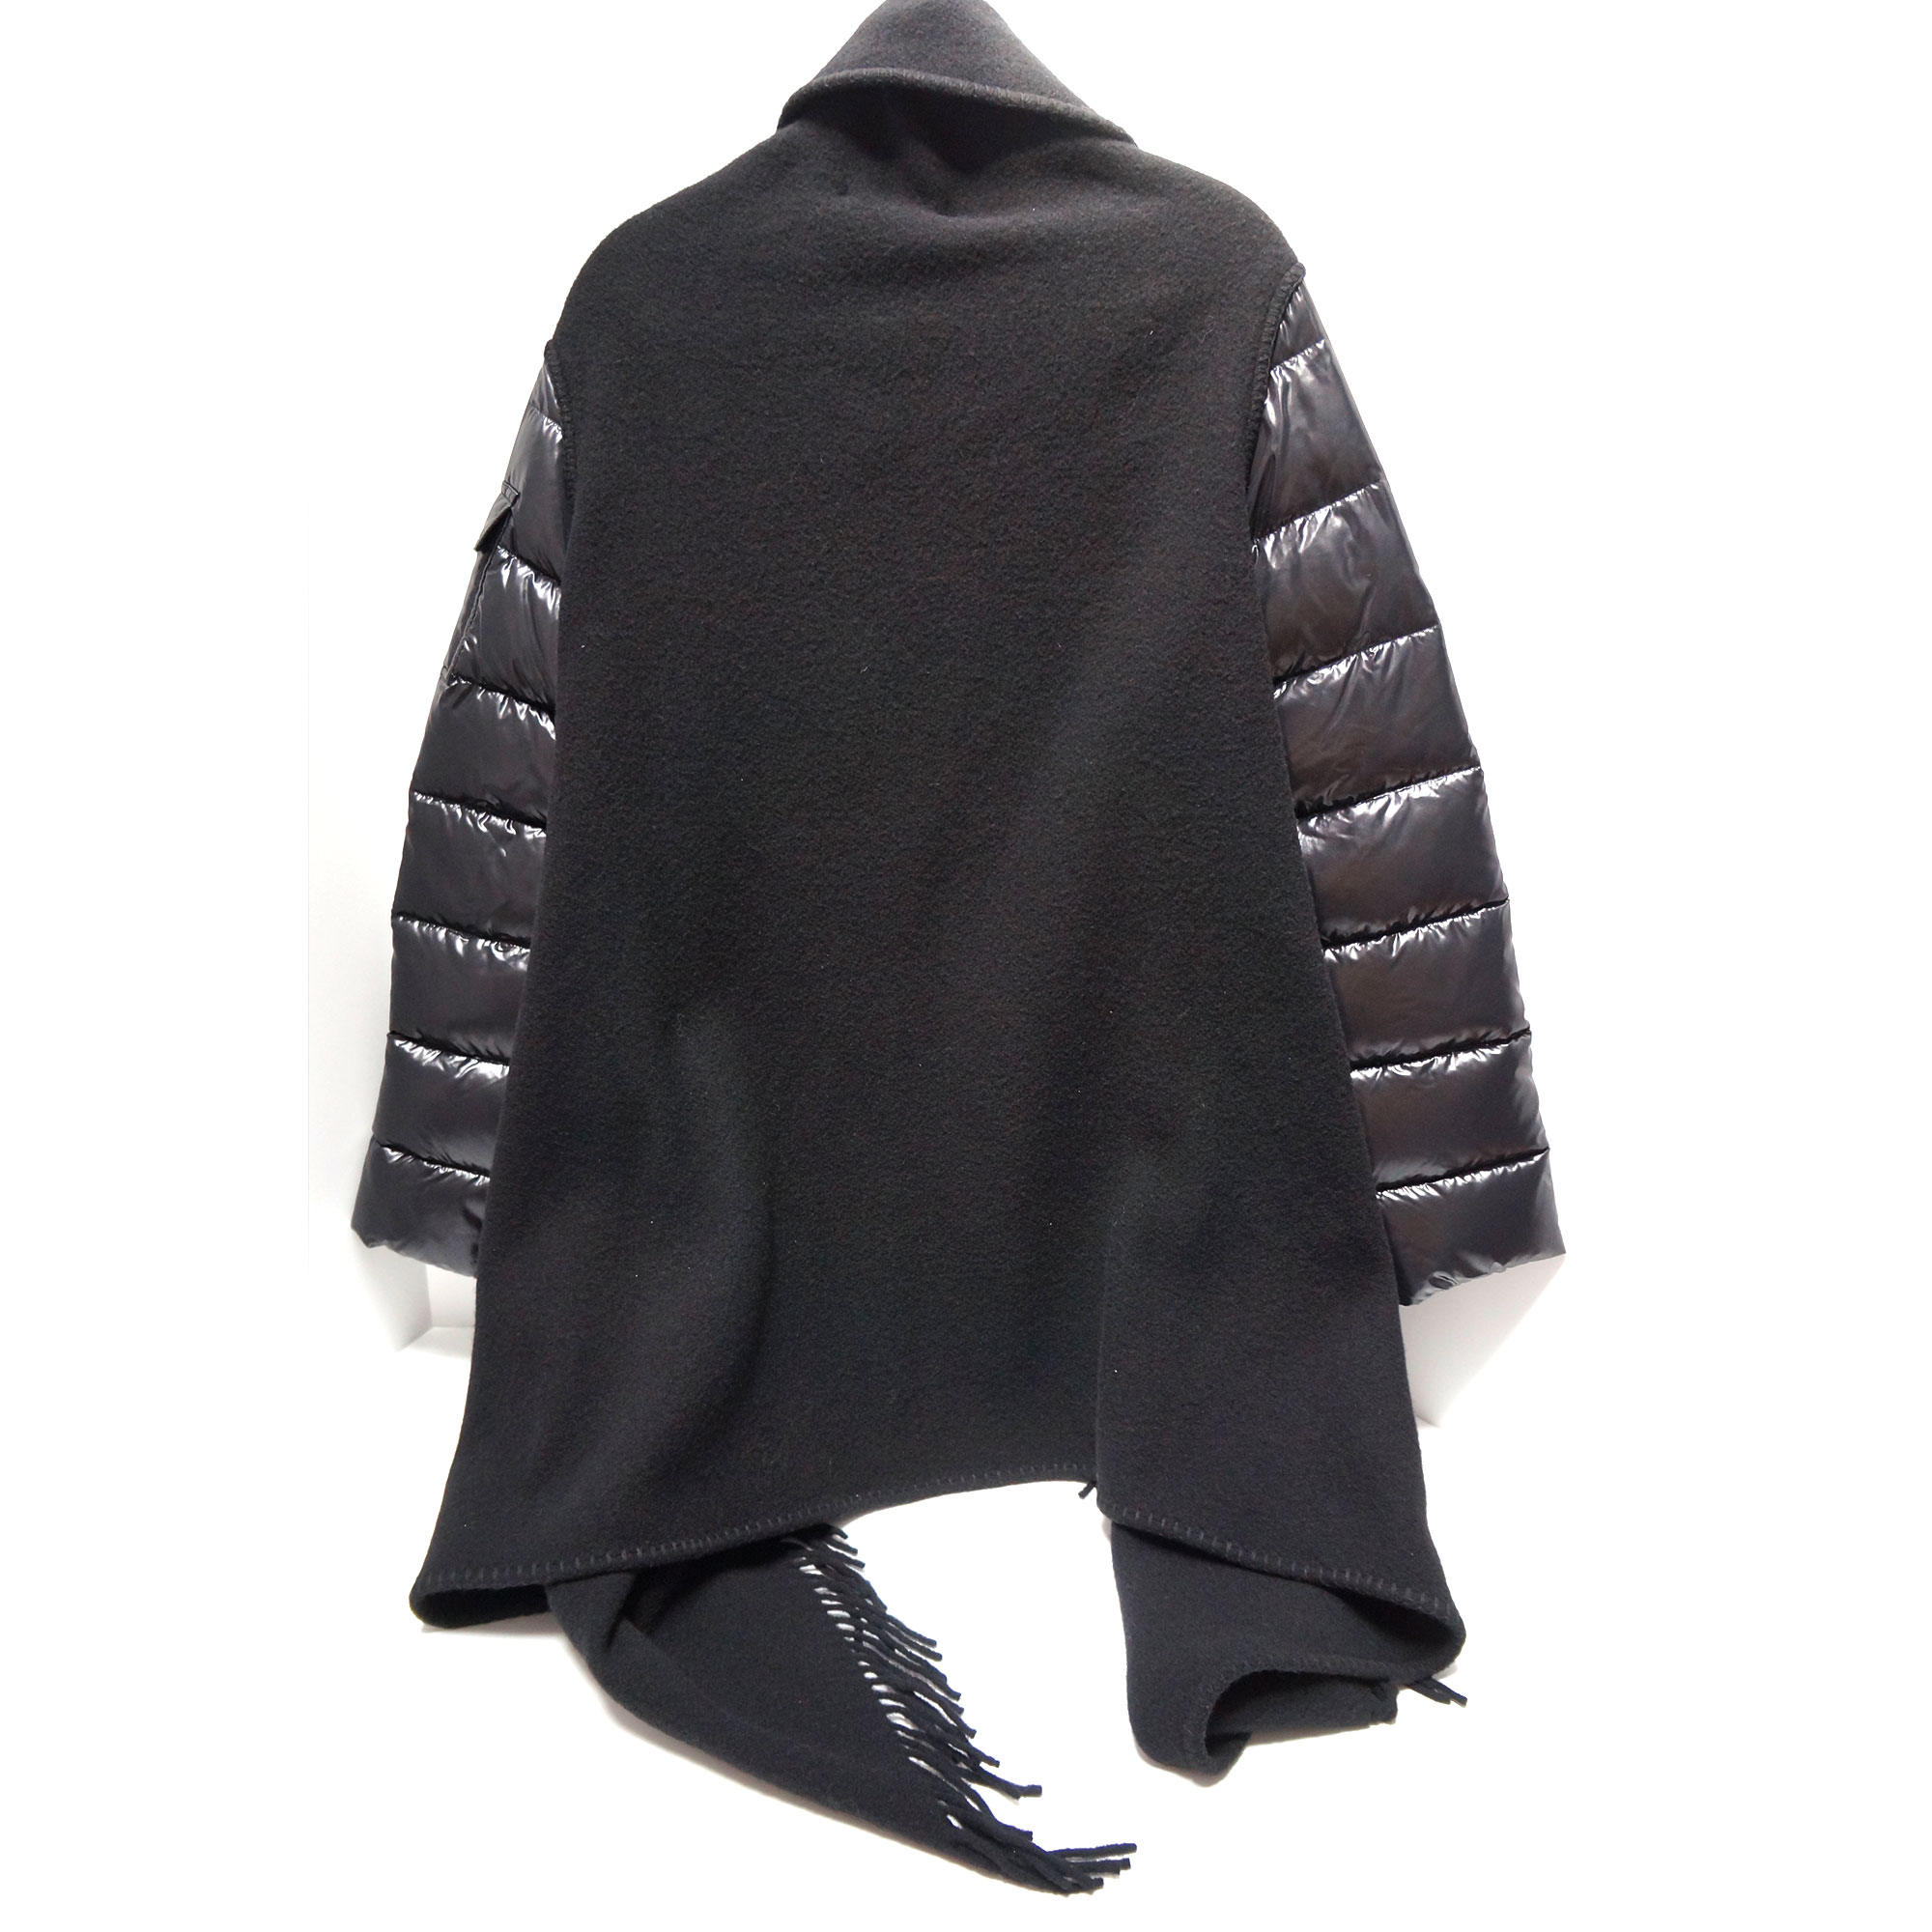 c422d4b2f Moncler Mantella Fringed Cape Jacket with Quilted Puffer Sleeves ...